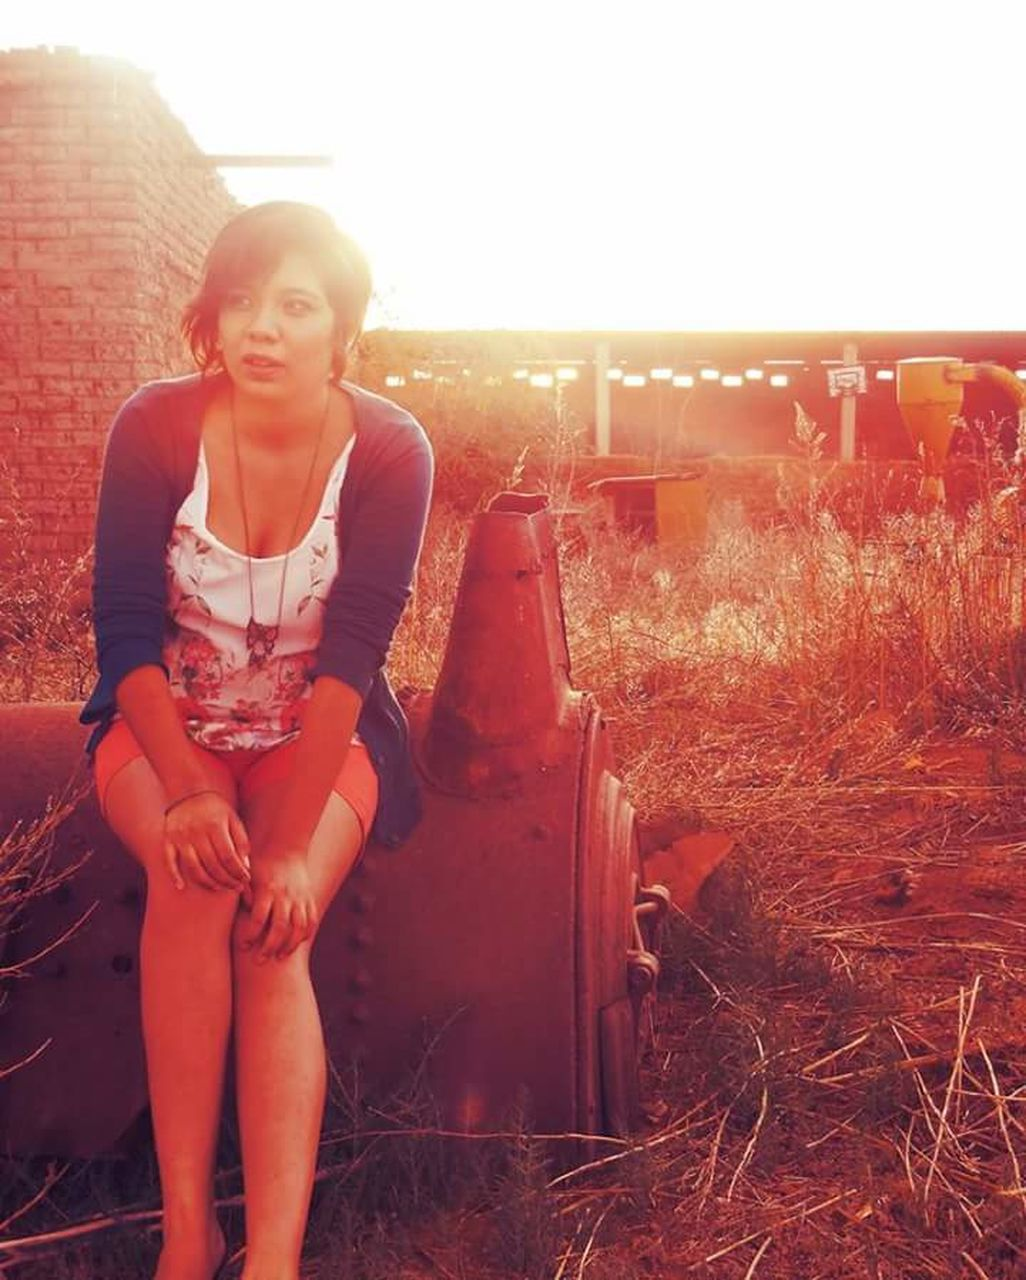 sunset, sunlight, lens flare, front view, young adult, one person, only women, outdoors, young women, one woman only, full length, sitting, portrait, real people, adult, beautiful woman, one young woman only, standing, grass, lifestyles, women, adults only, beauty, happiness, rural scene, day, clear sky, people, nature, sky